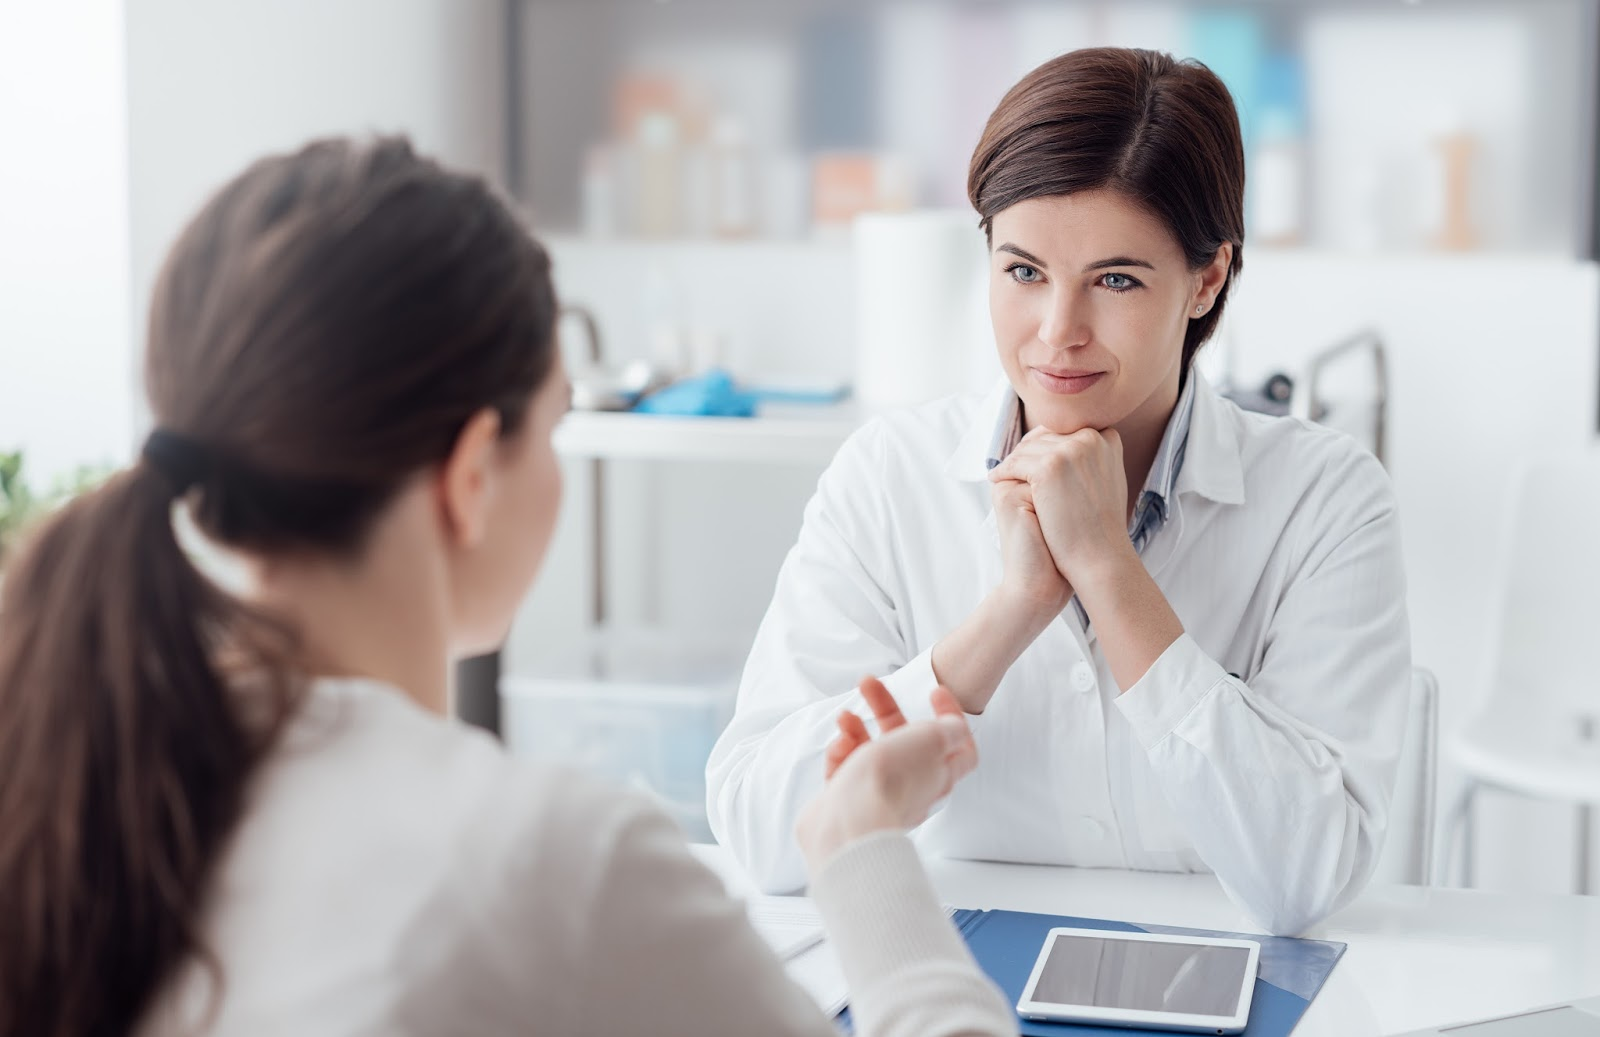 Patient consults with her doctor